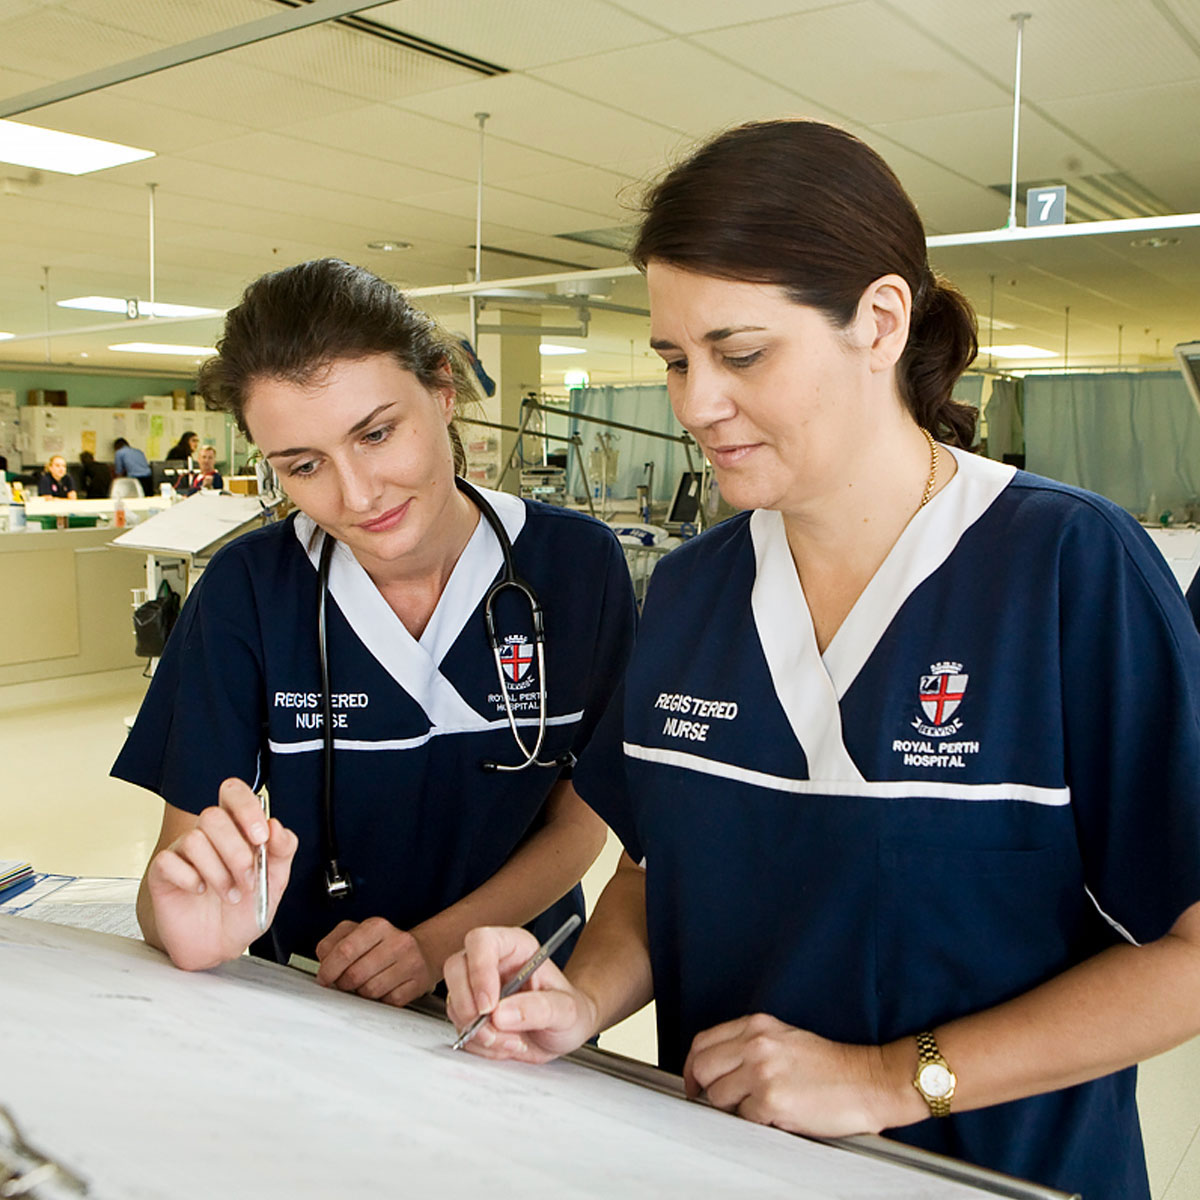 Two nurses looking at notes